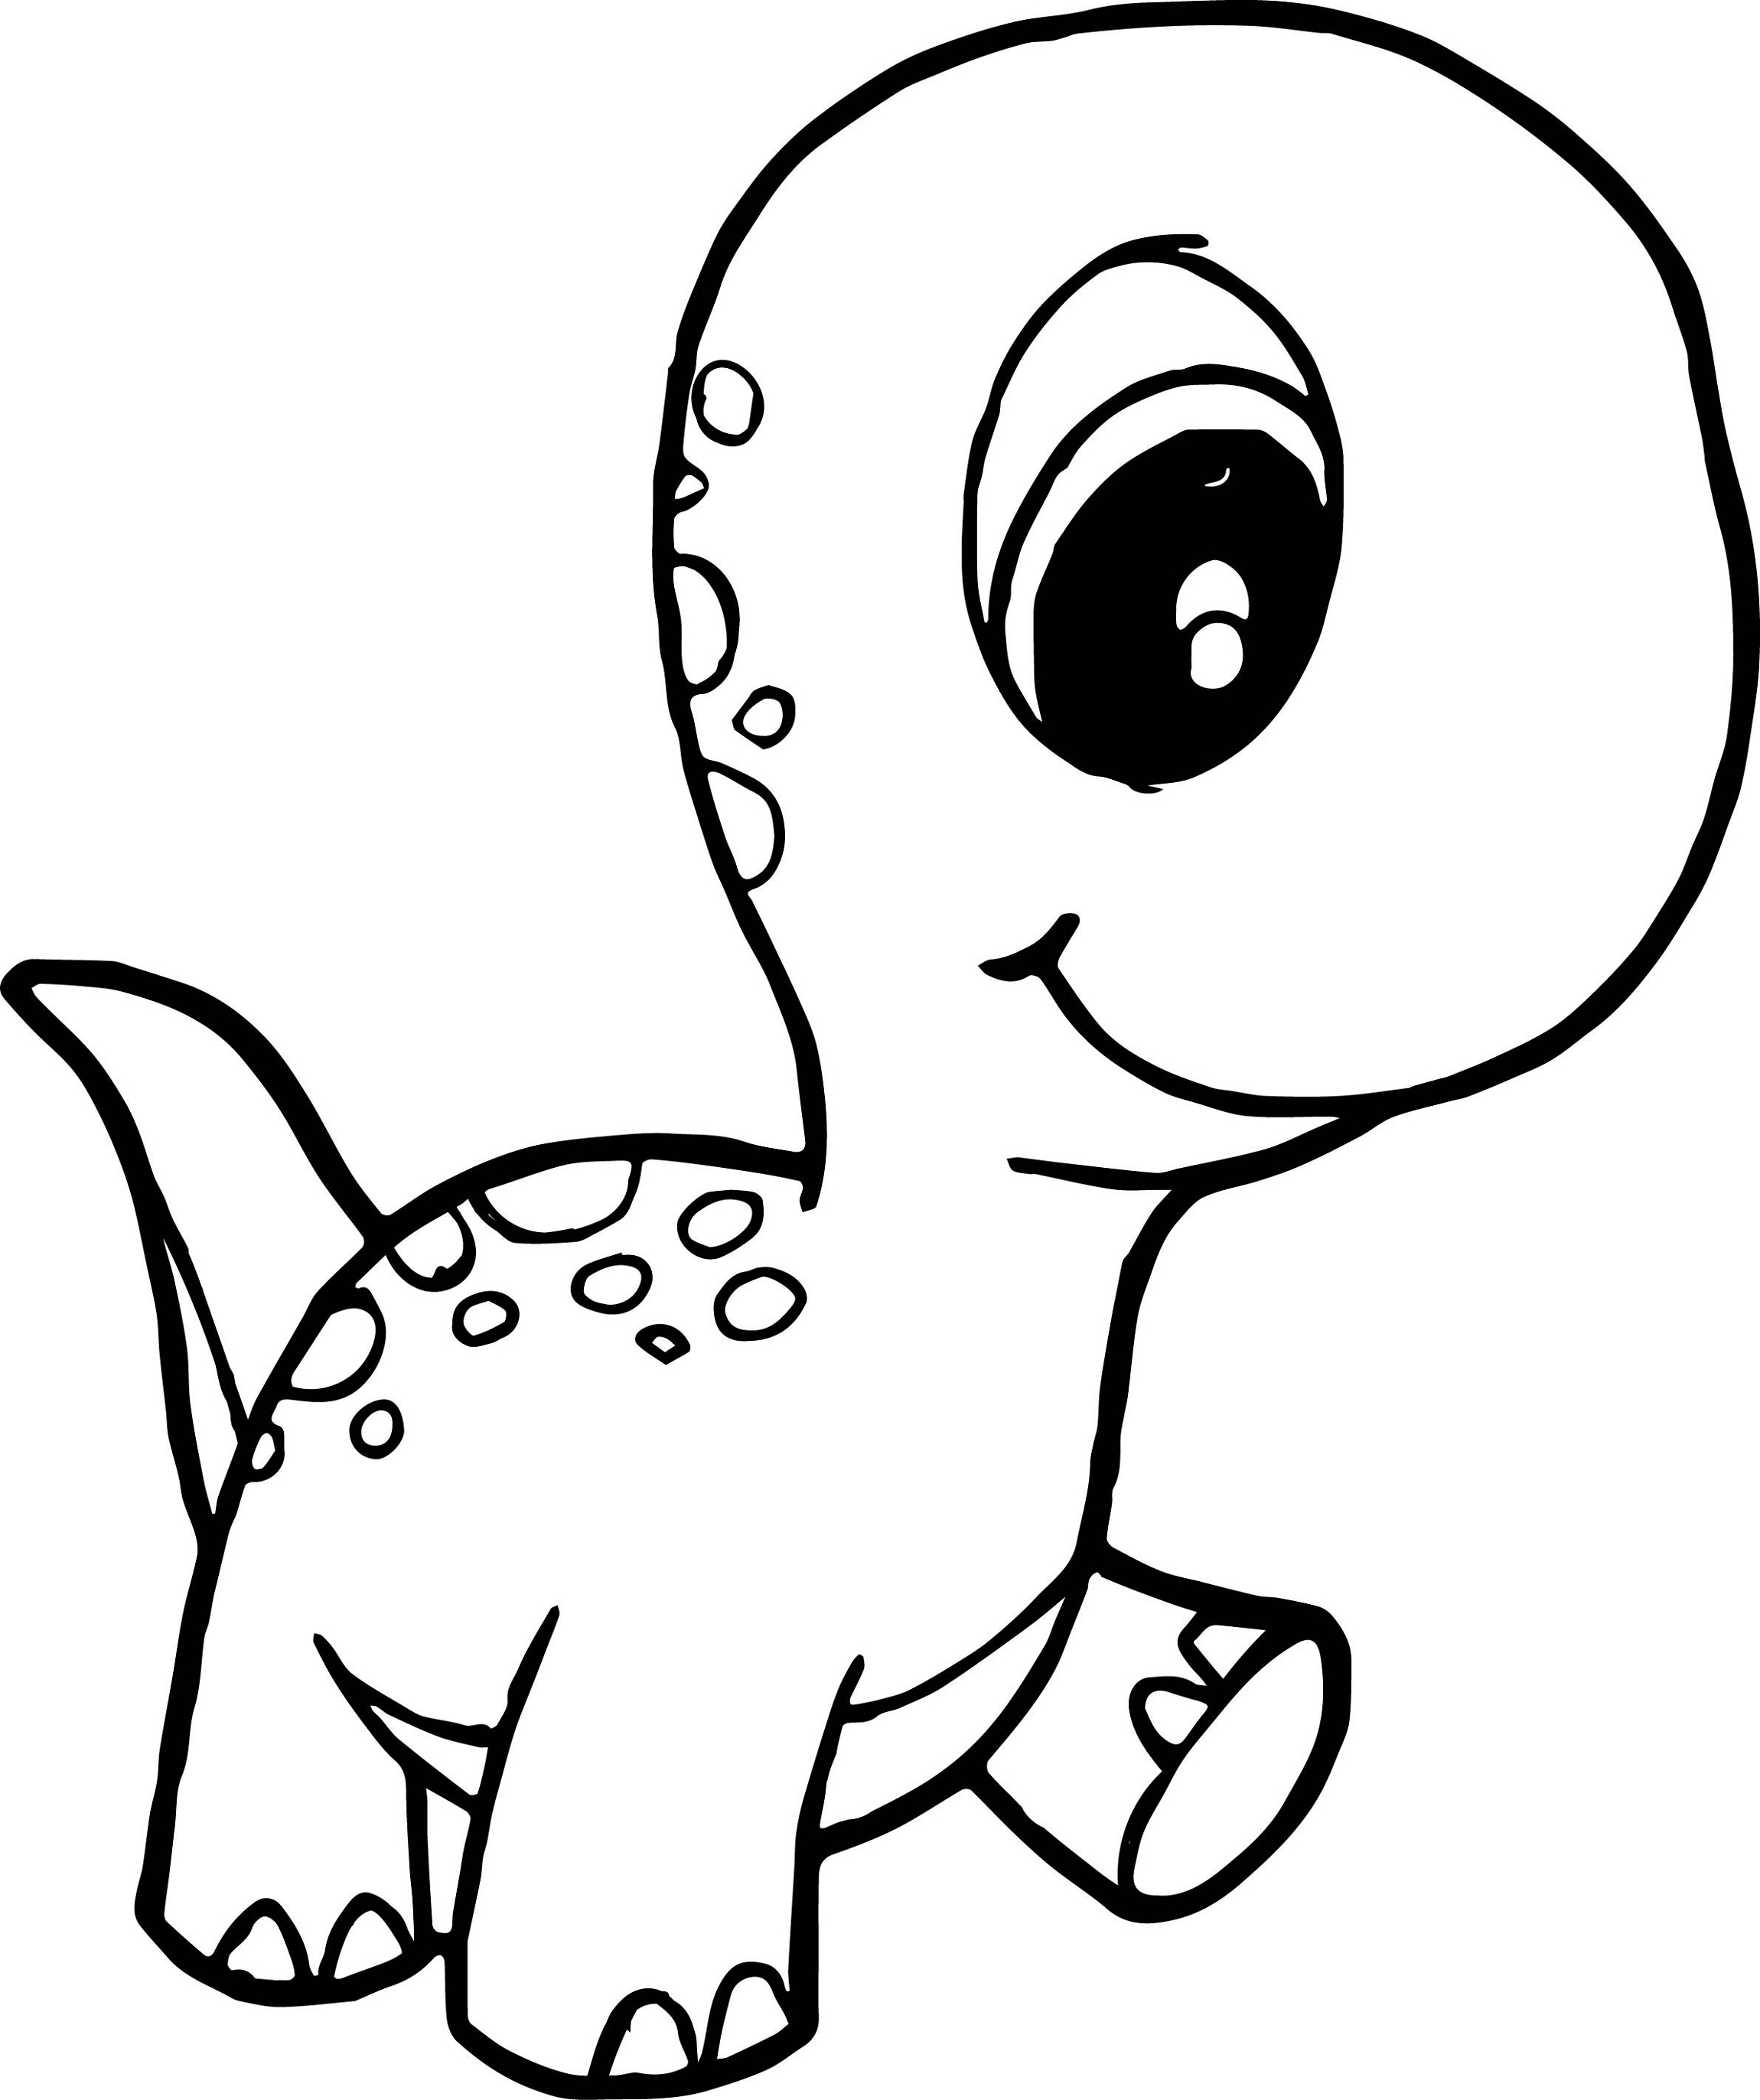 baby dinosaur coloring pages baby dinosaur coloring page free download on clipartmag baby pages dinosaur coloring